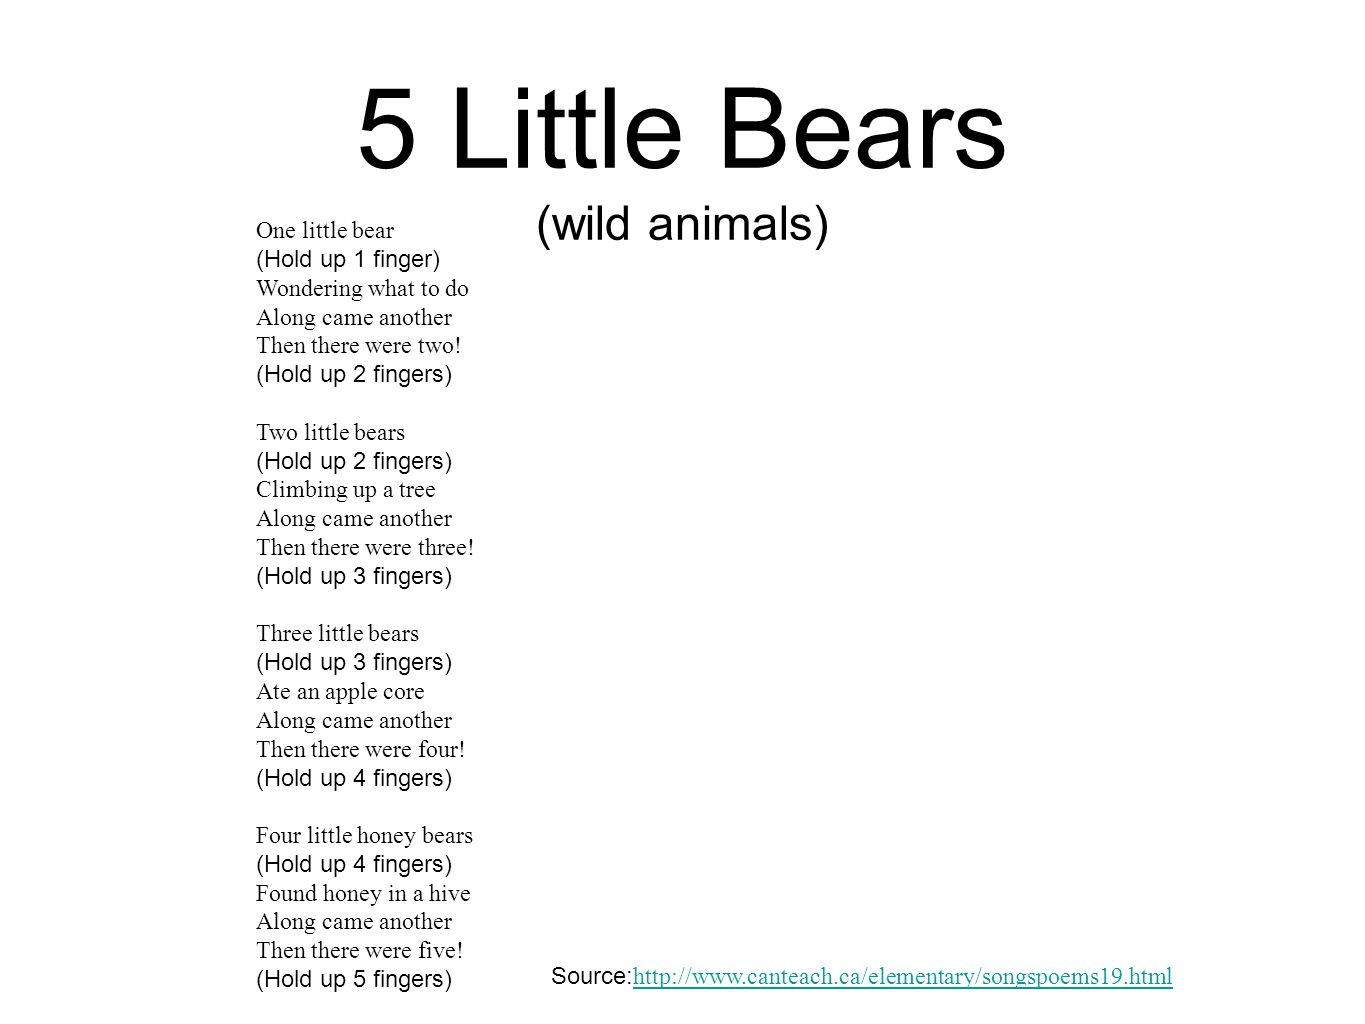 5 Little Bears (wild animals) One little bear (Hold up 1 finger) Wondering what to do Along came another Then there were two! (Hold up 2 fingers) Two